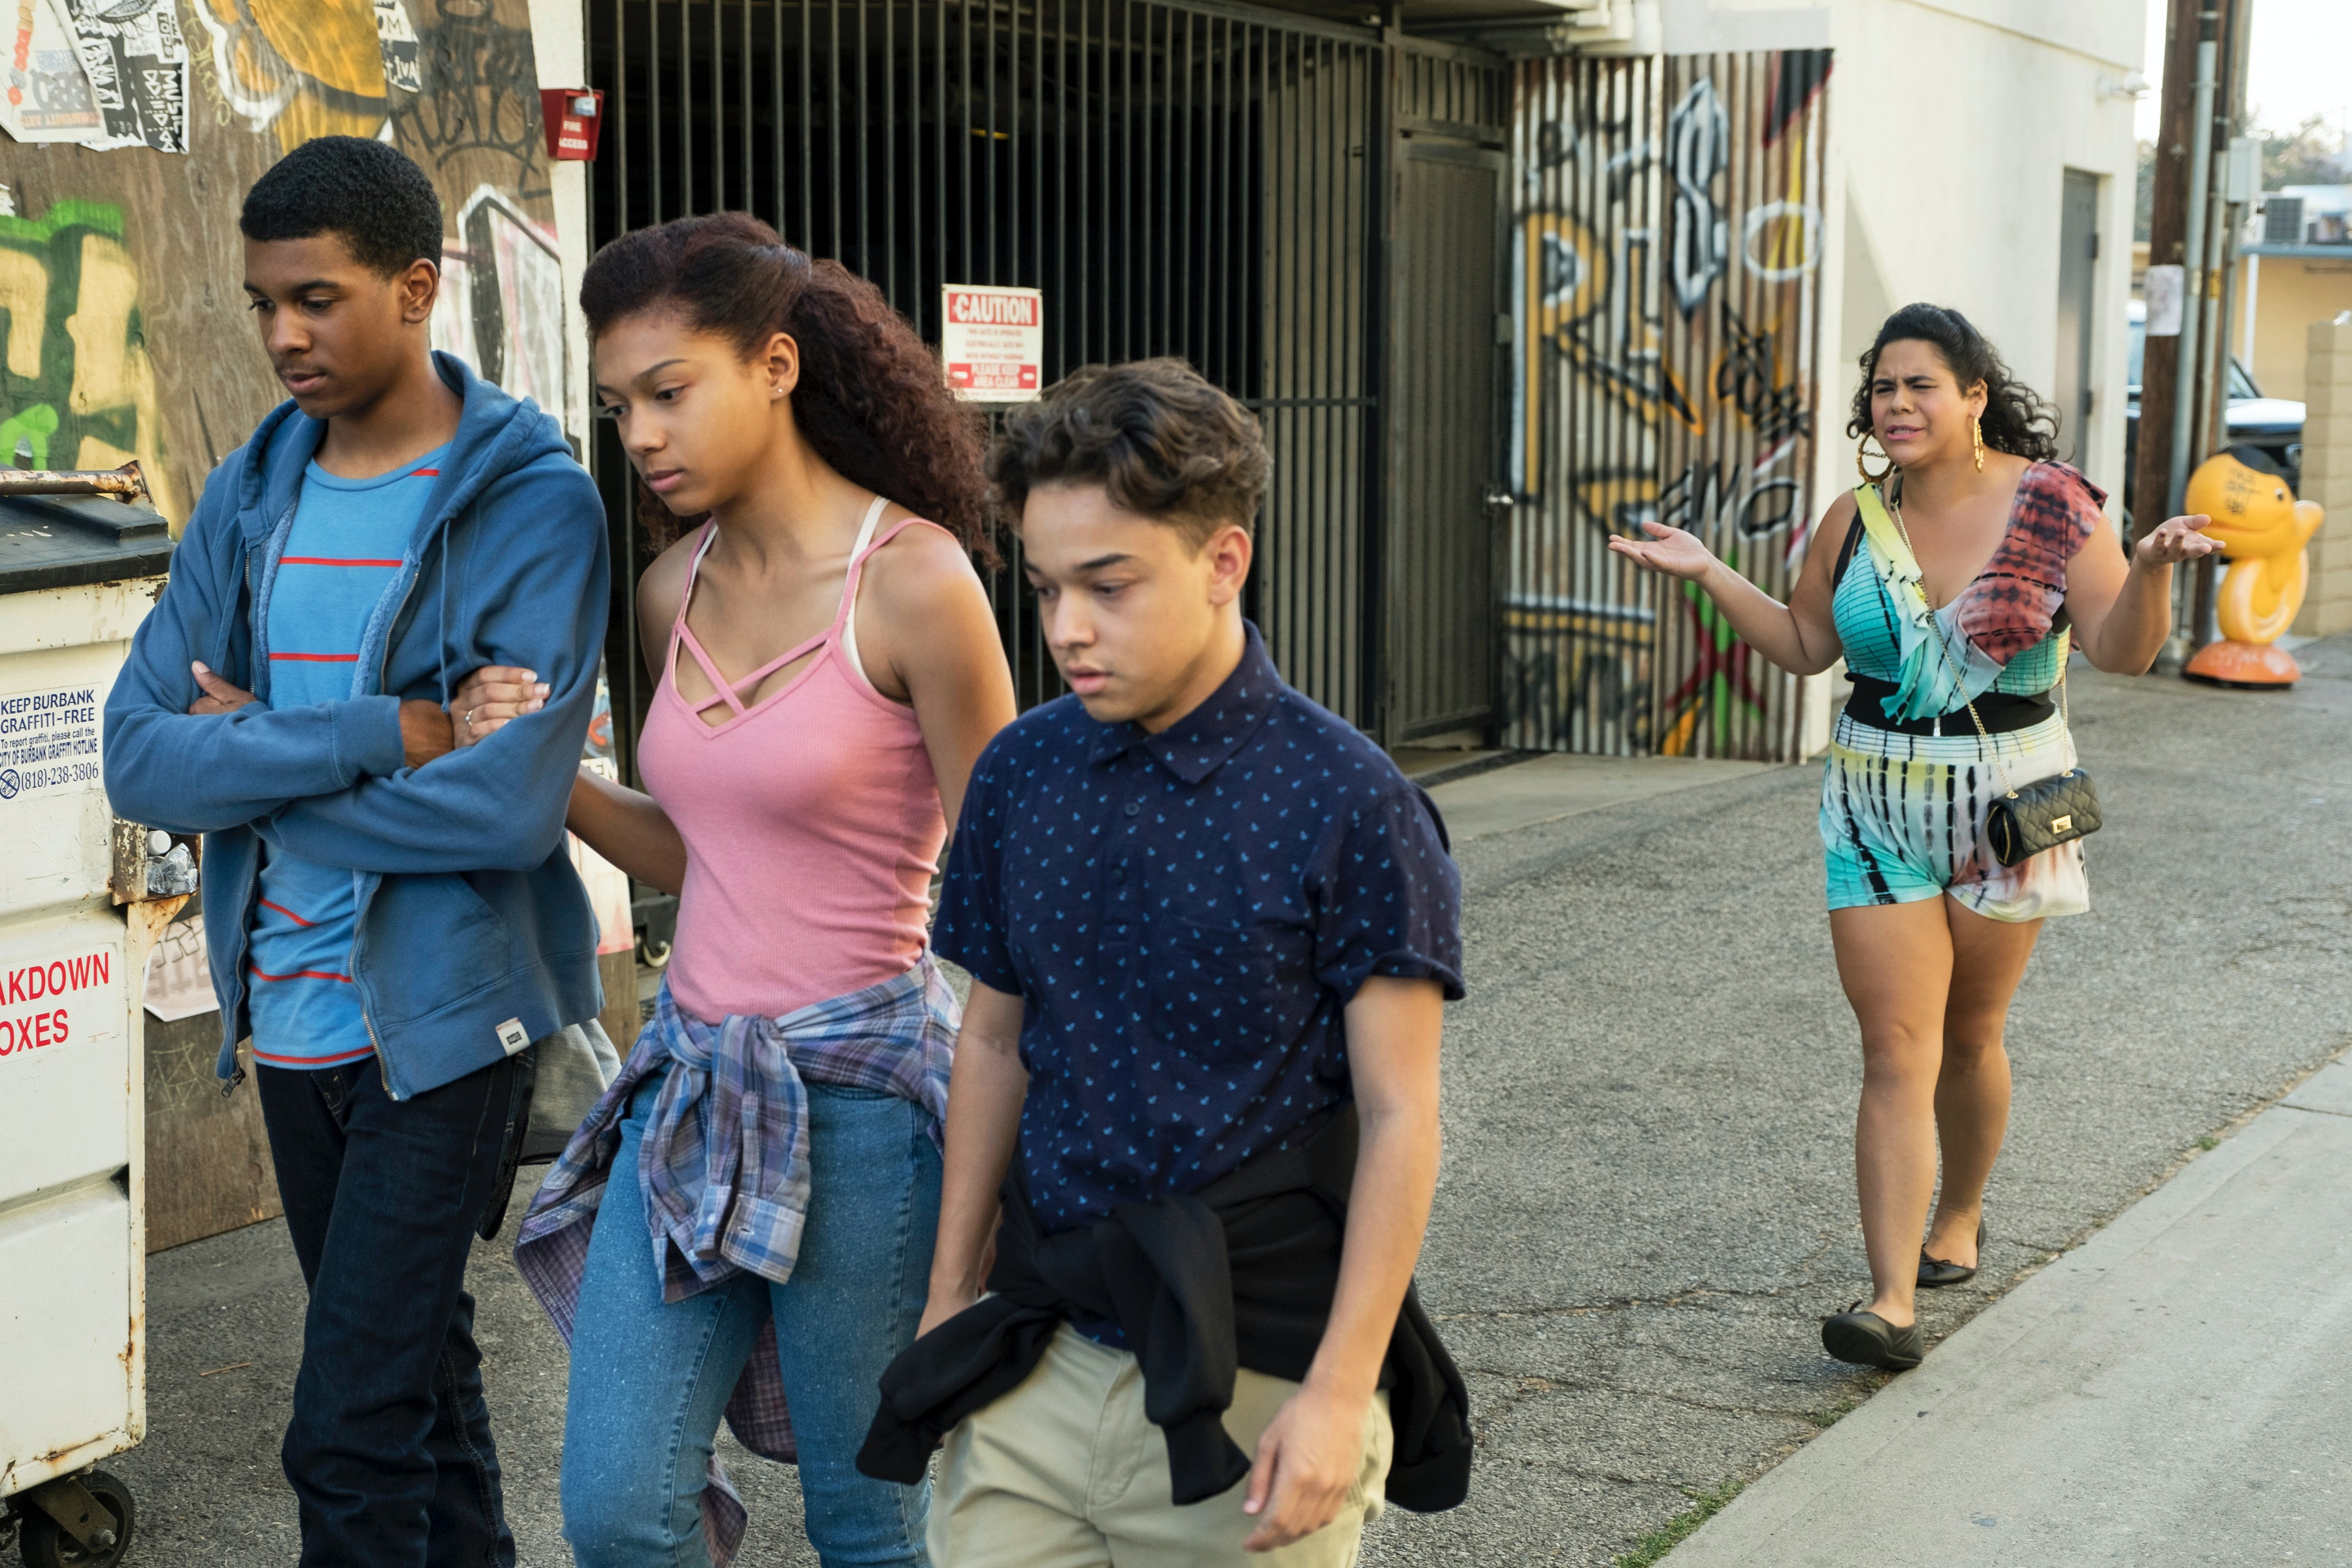 Will 'On My Block' Return For Season 2? It Would Be A Huge Win For  Inclusive TV